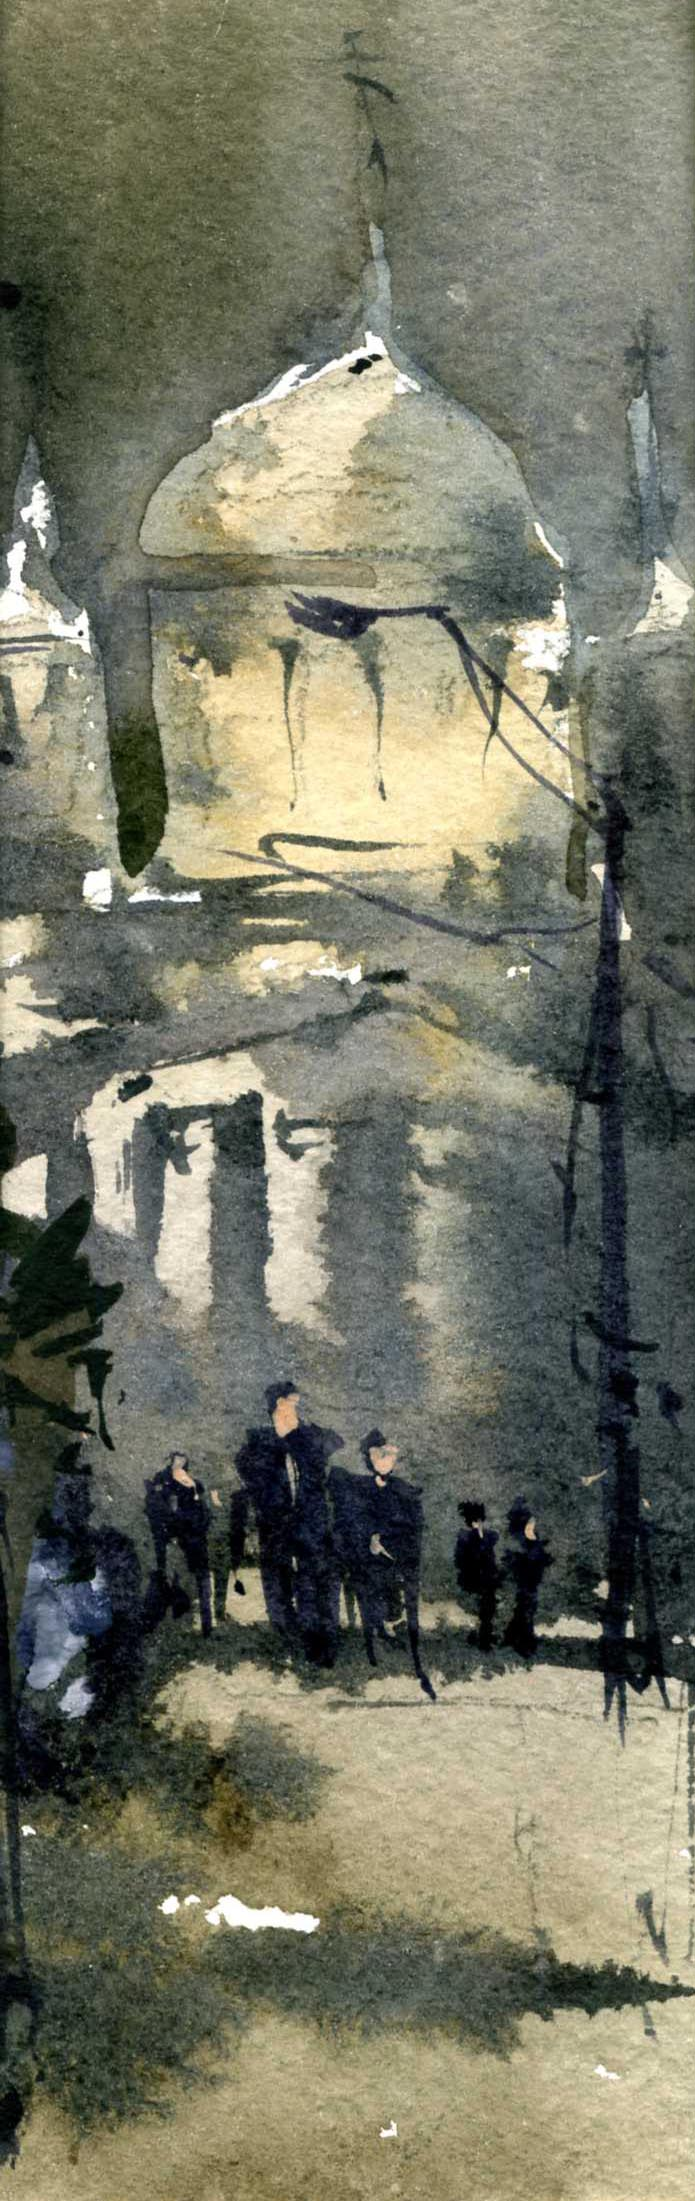 Город 26 (Акварель/Watercolor)